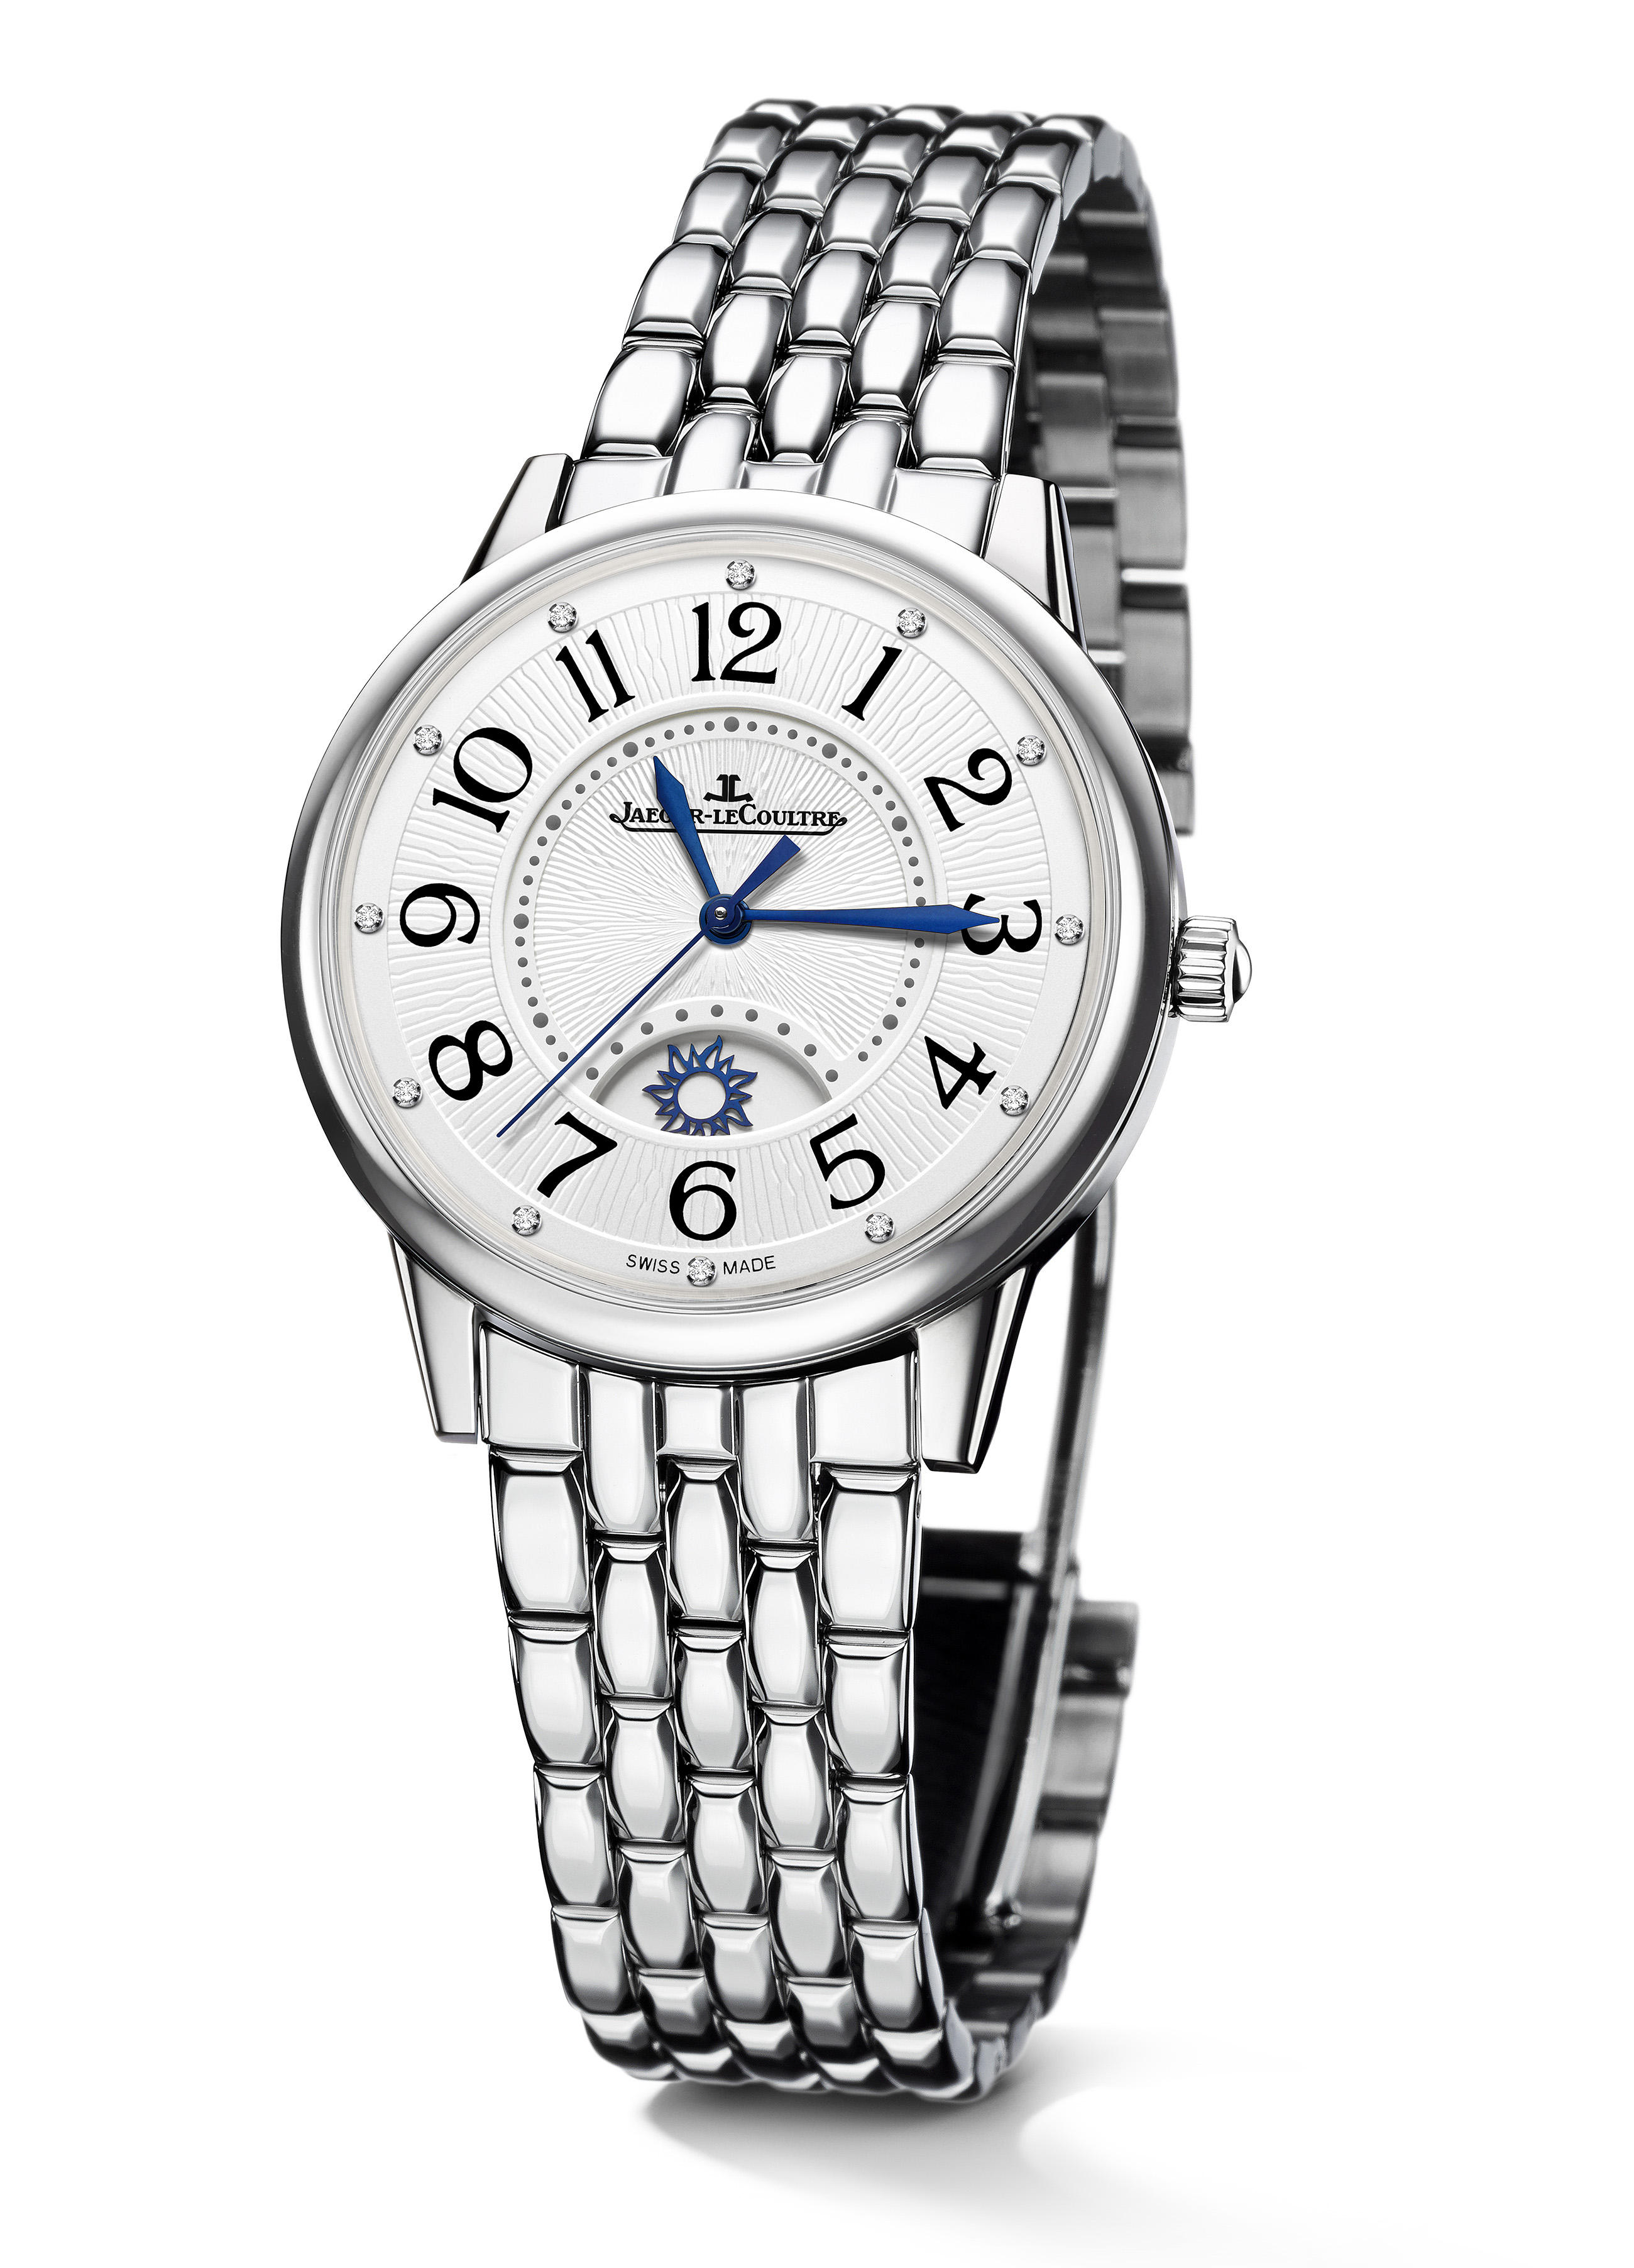 jaeger-lecoultre_rendez-vous_night_day_large_in_steel_steel copy